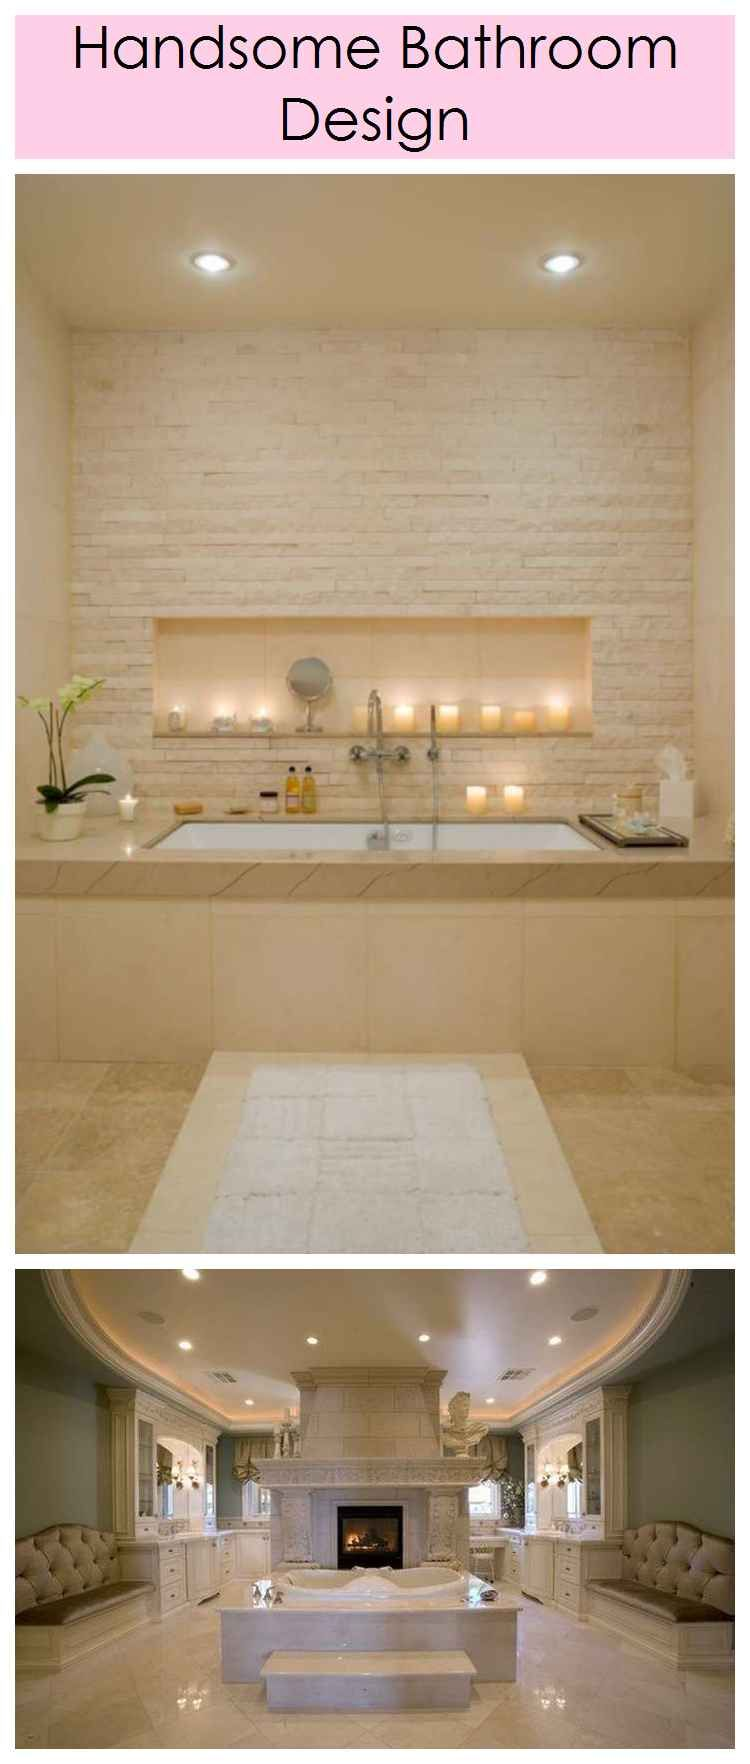 Take A Look Inside These Enviable Baths And Have Motivated To